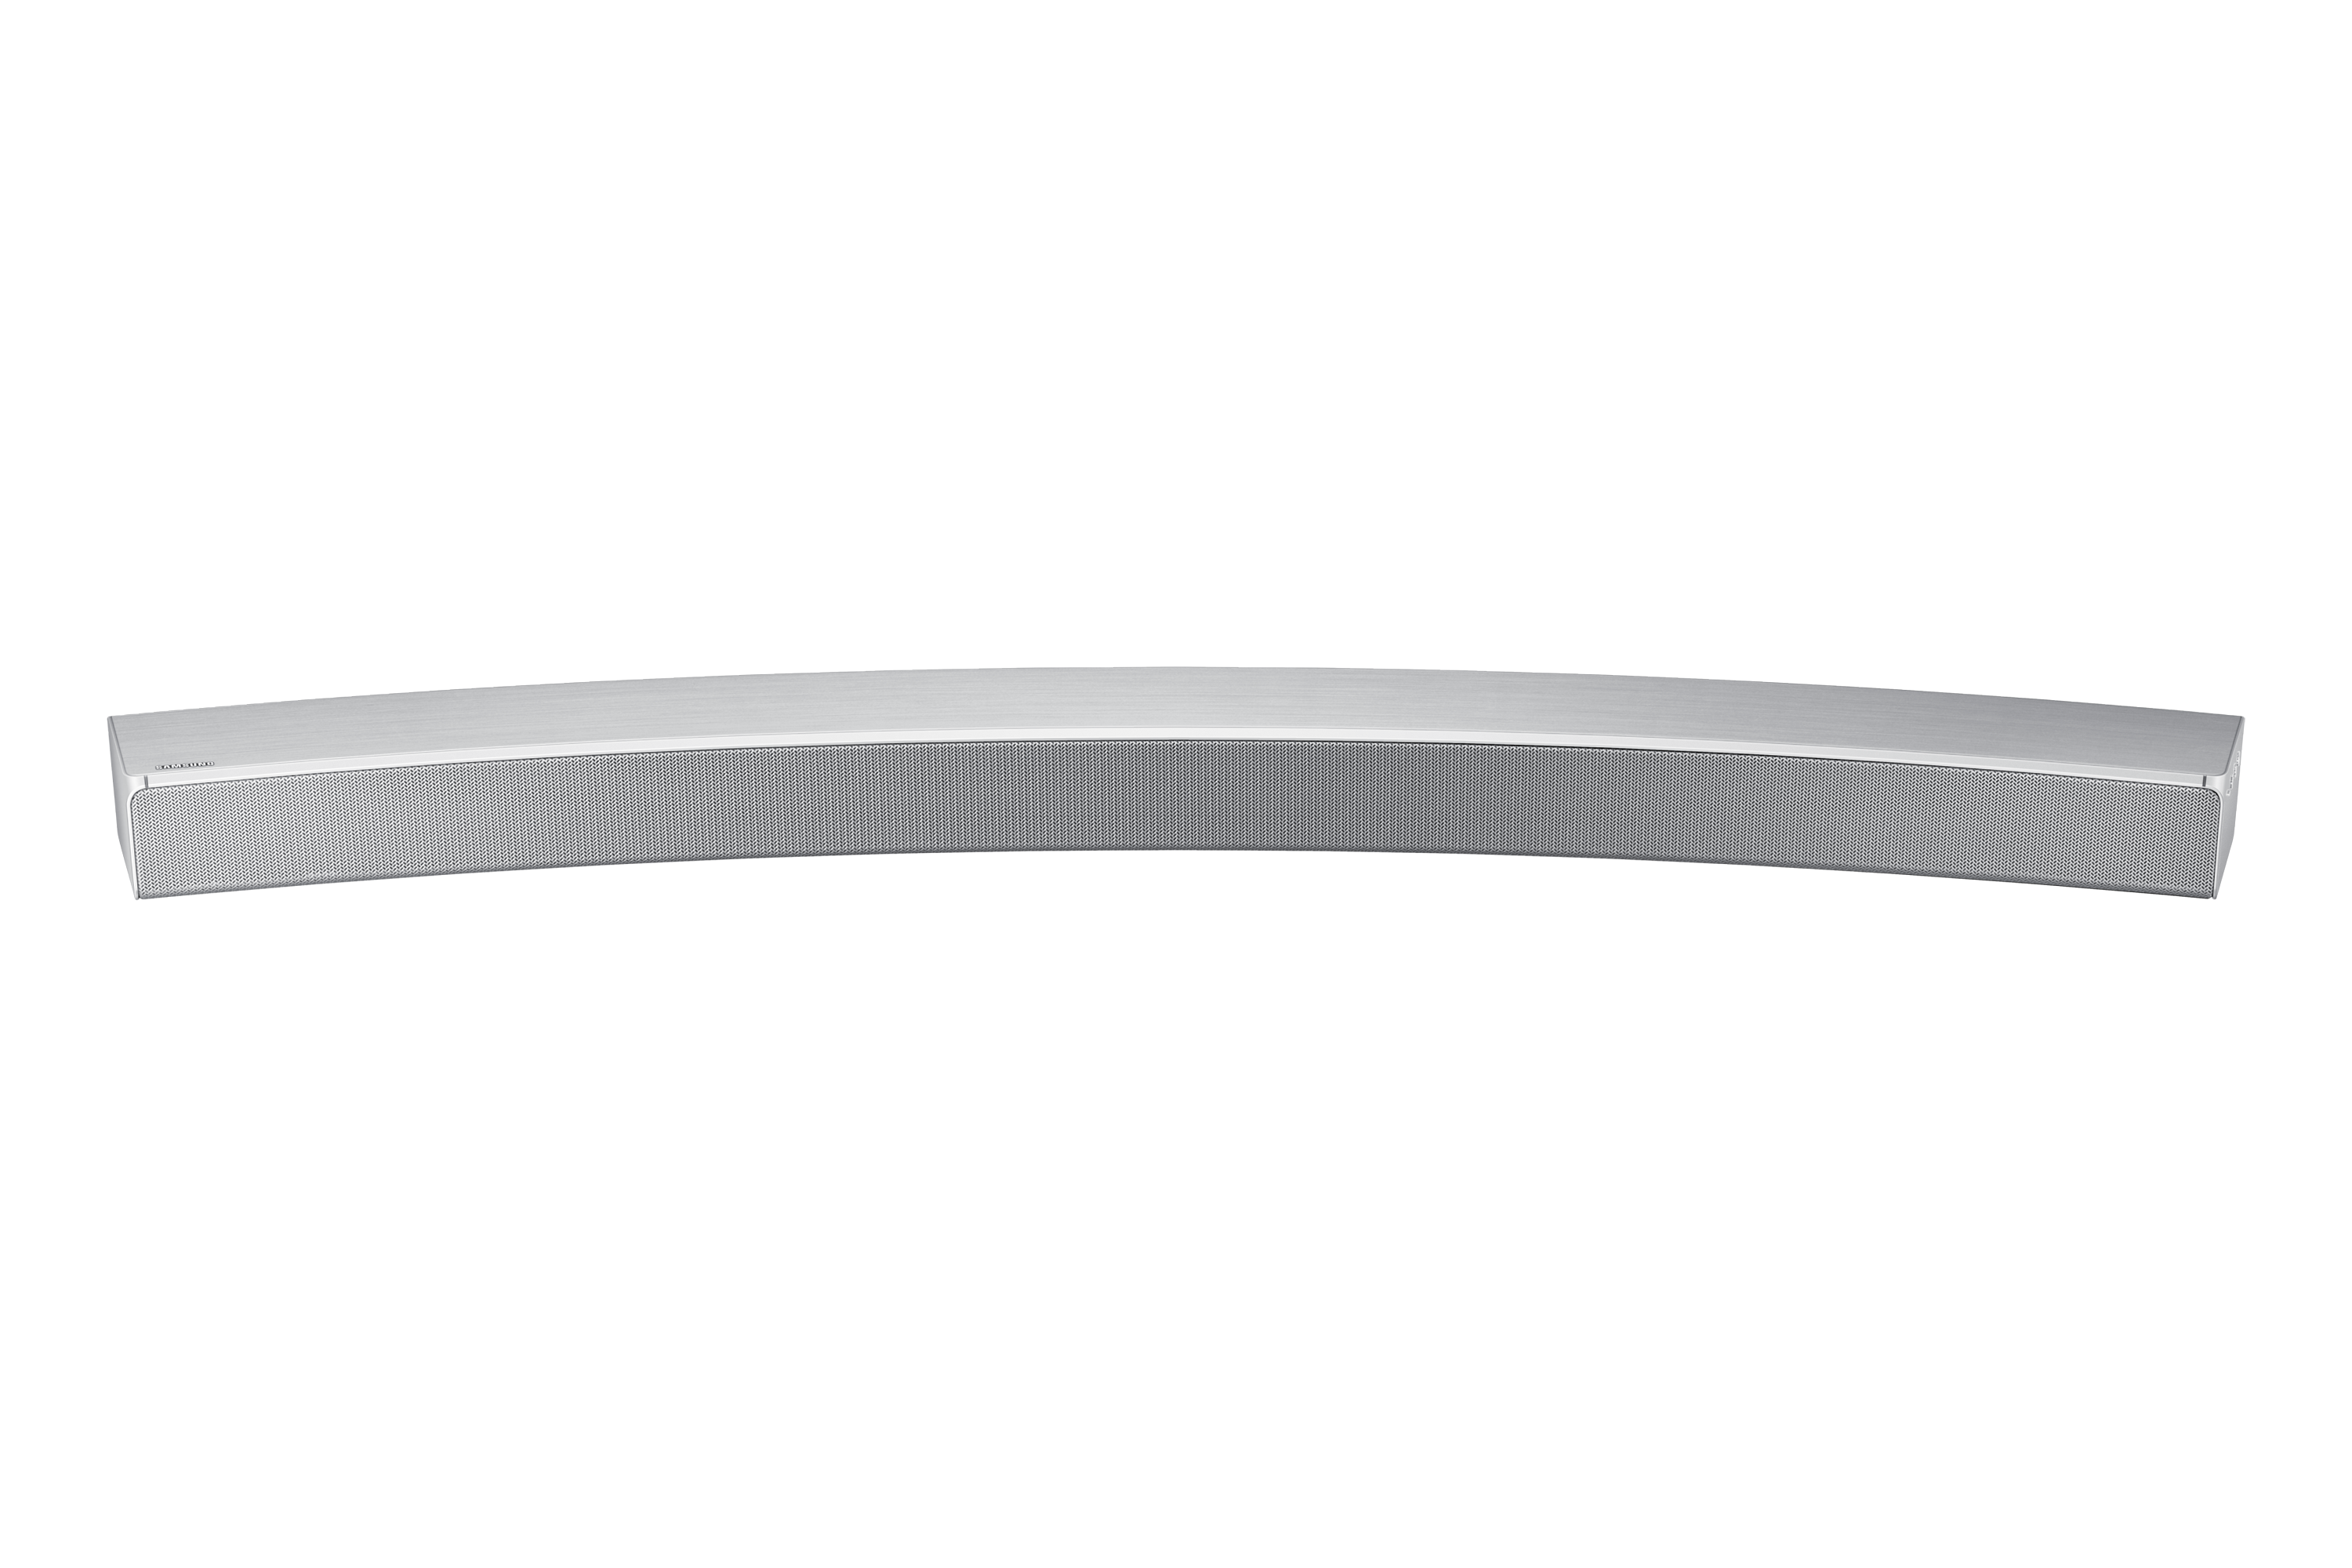 HW-MS6501 Wireless Curved Soundbar with Distortion Cancelling